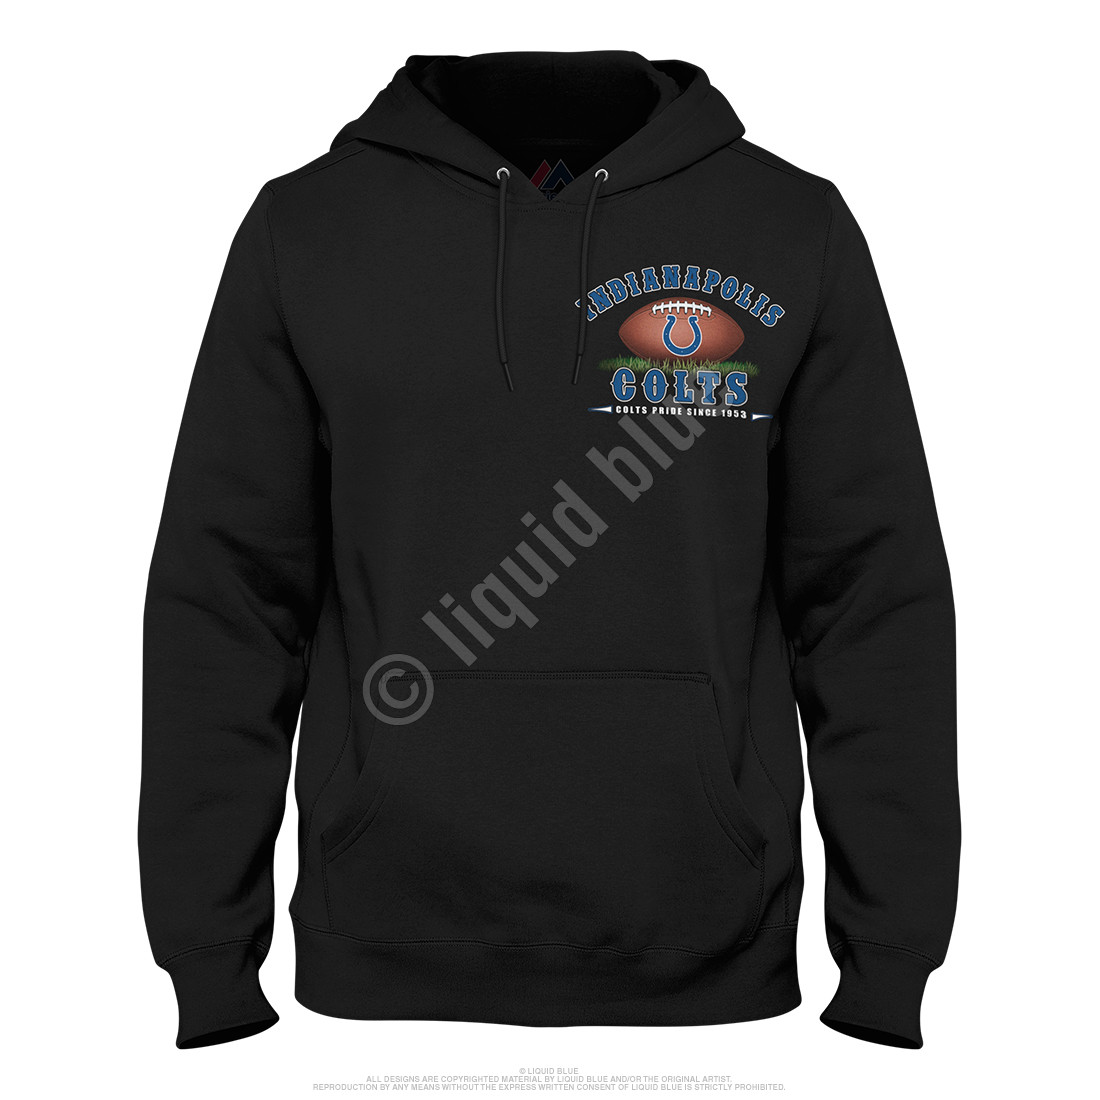 Indianapolis Colts End Zone Black Hoodie